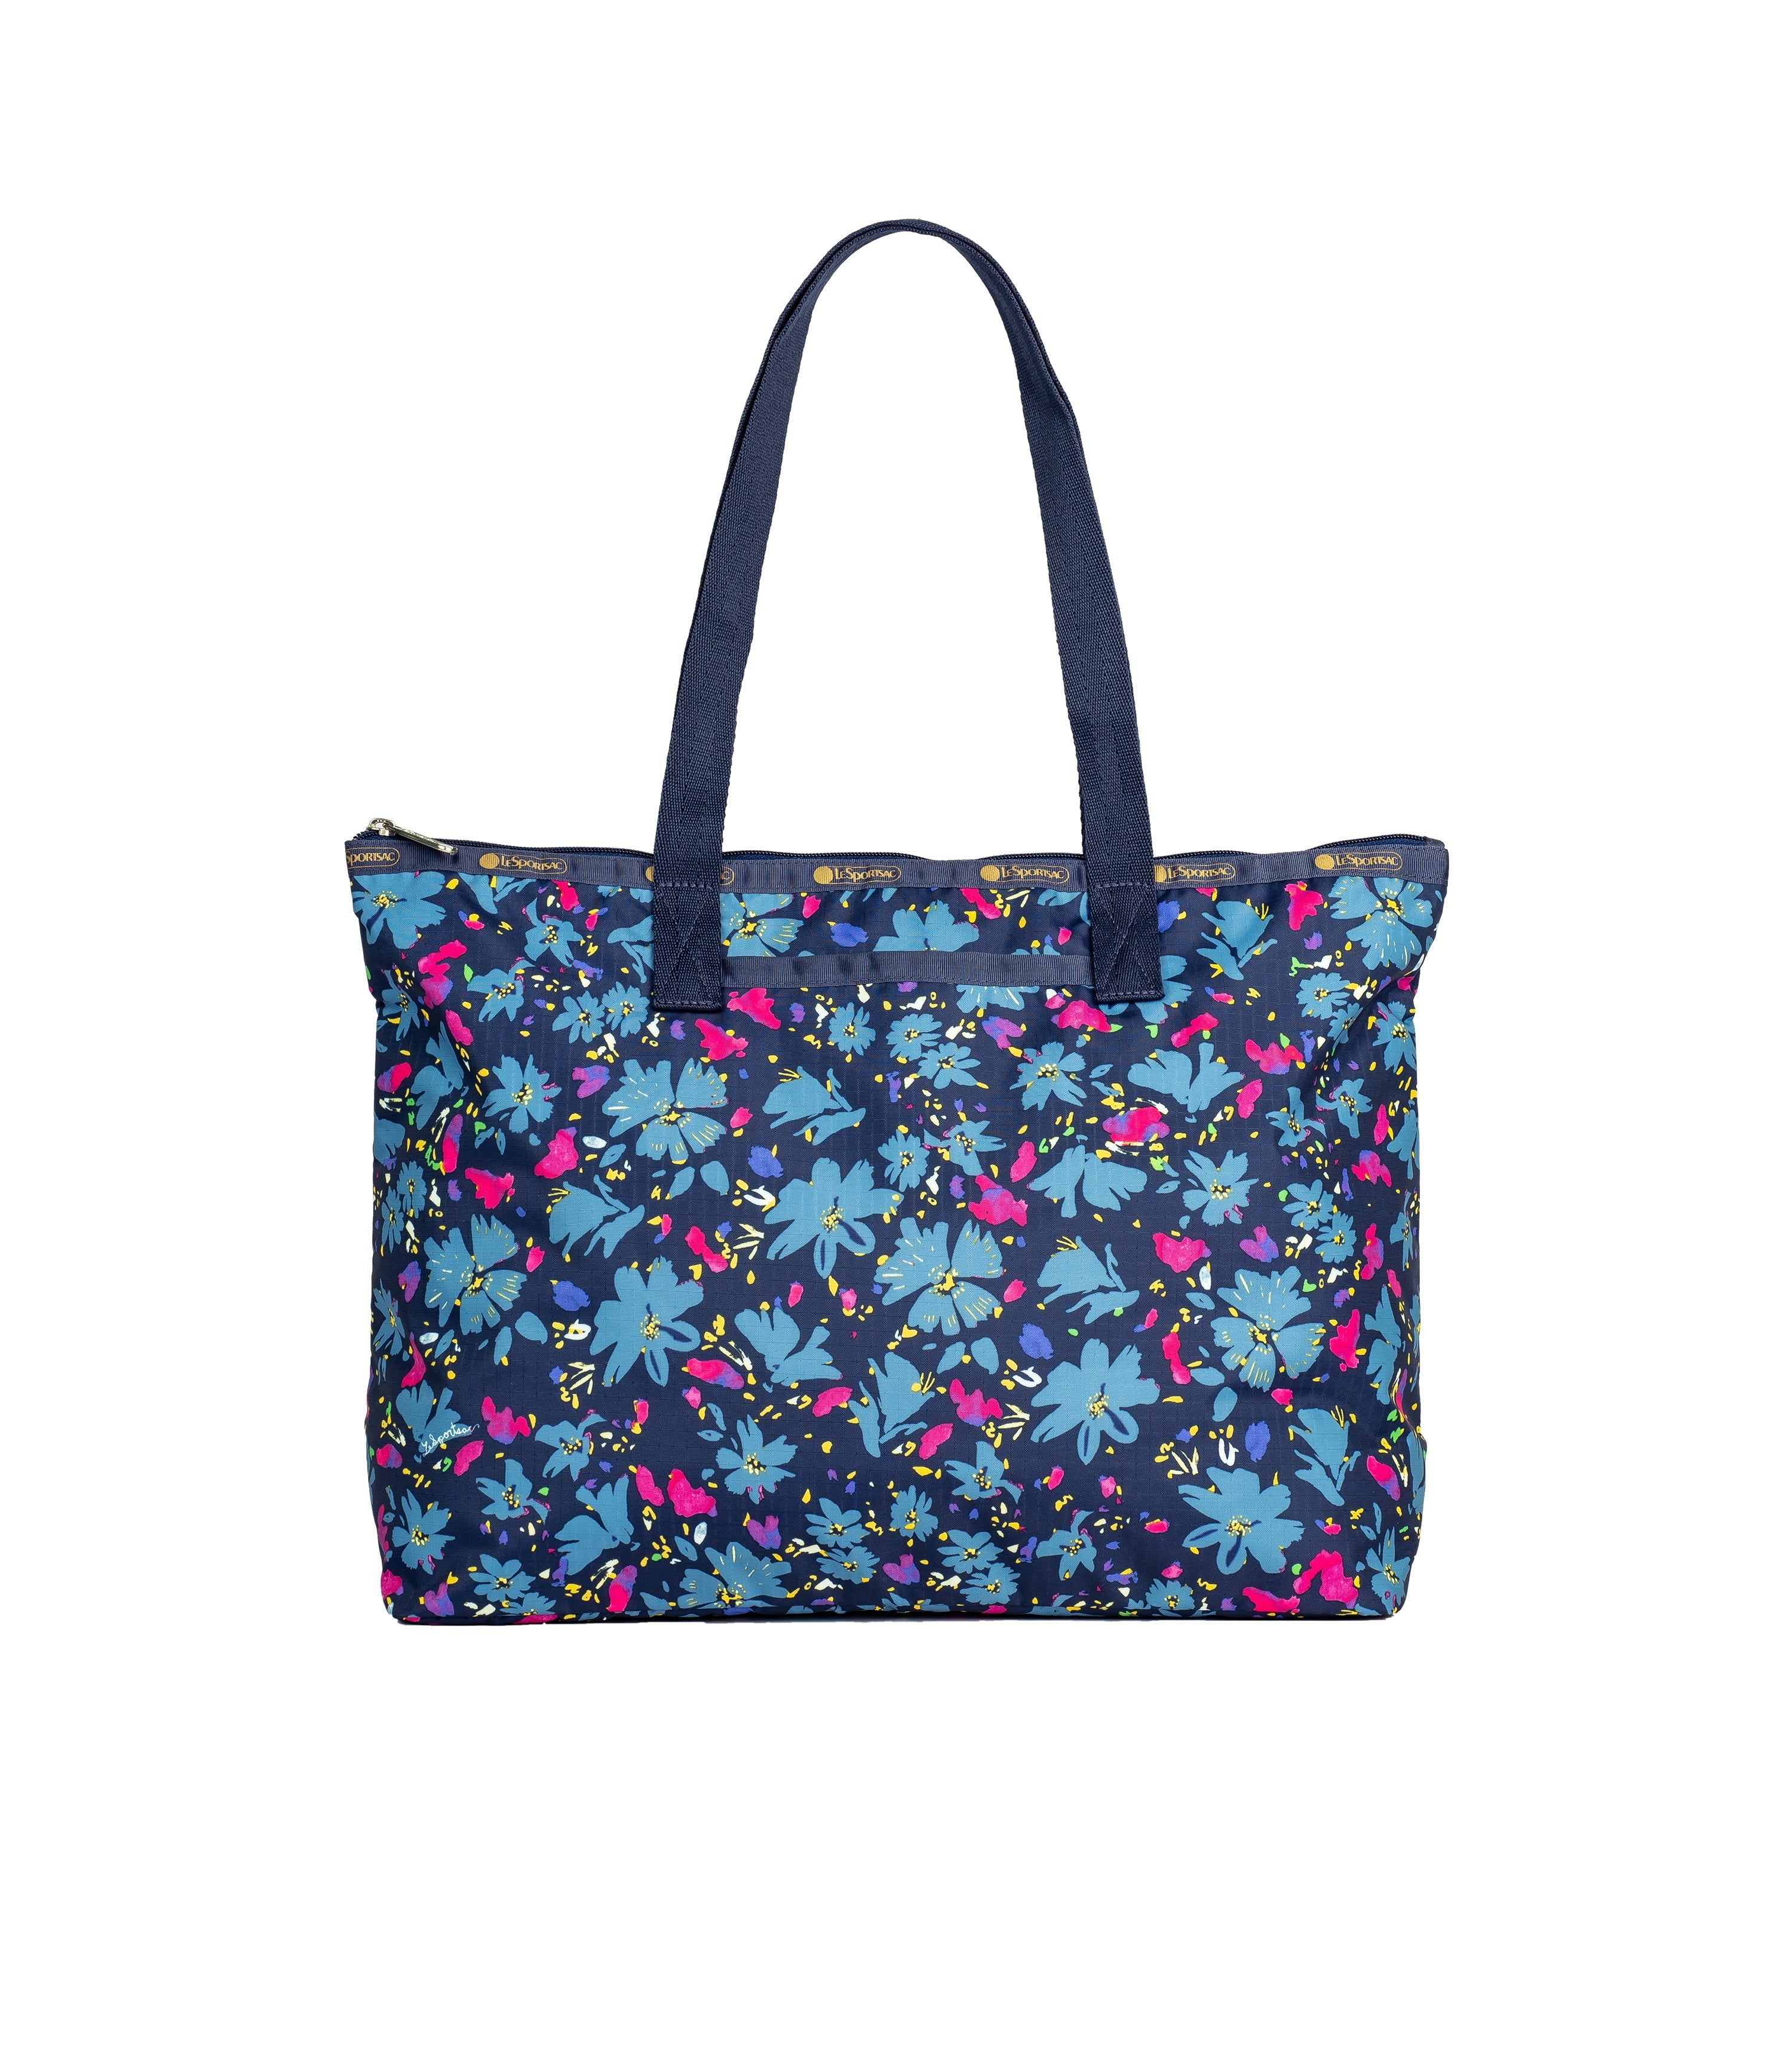 LeSportsac - Totes - Basic East/West Tote - Blowout Floral print